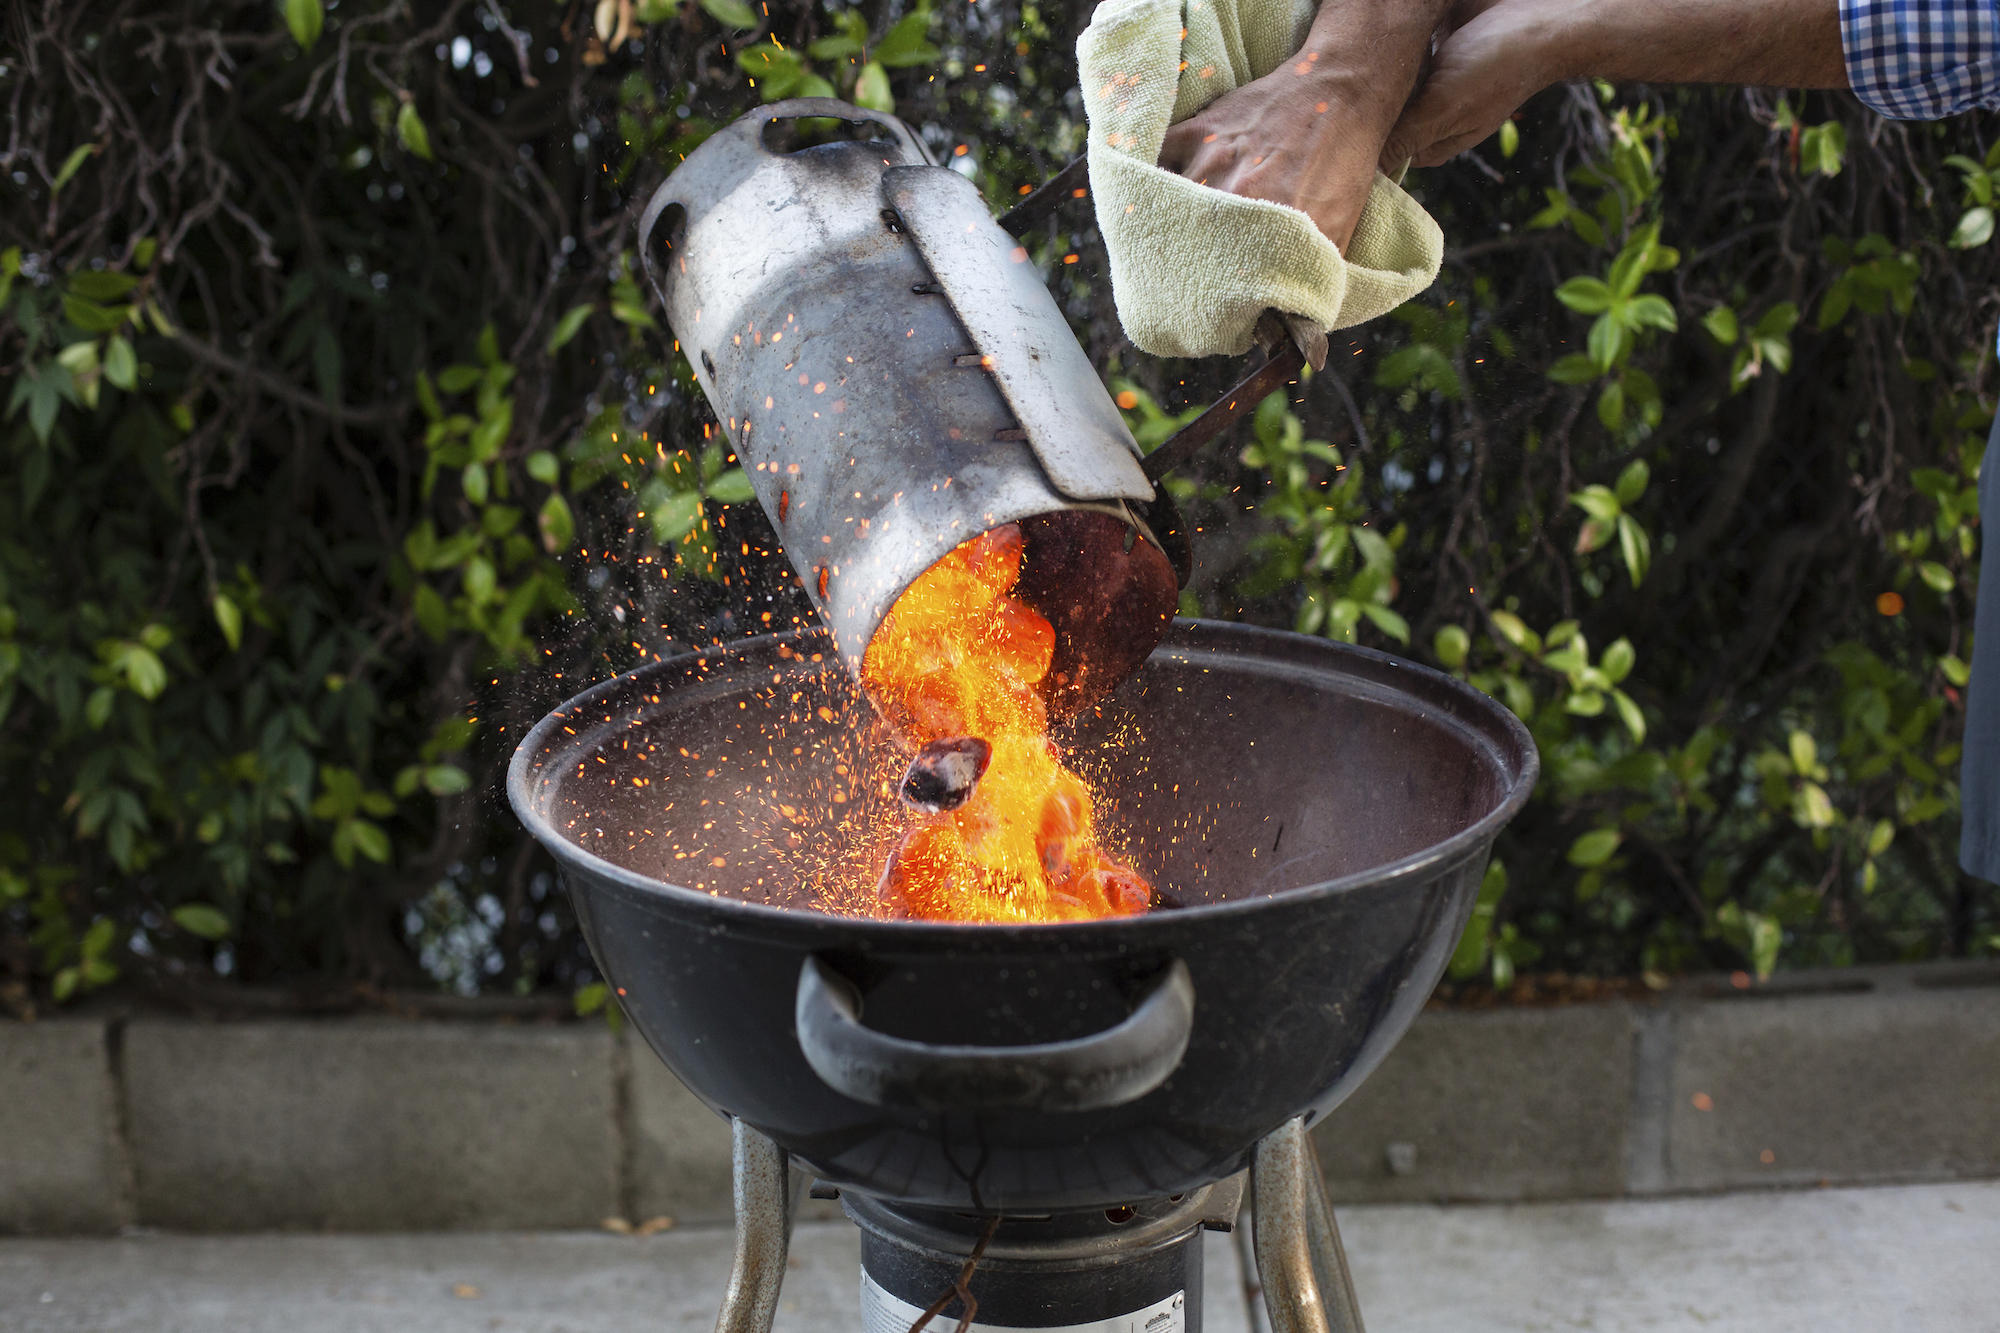 Cropped hands of man putting coals in barbecue at backyard